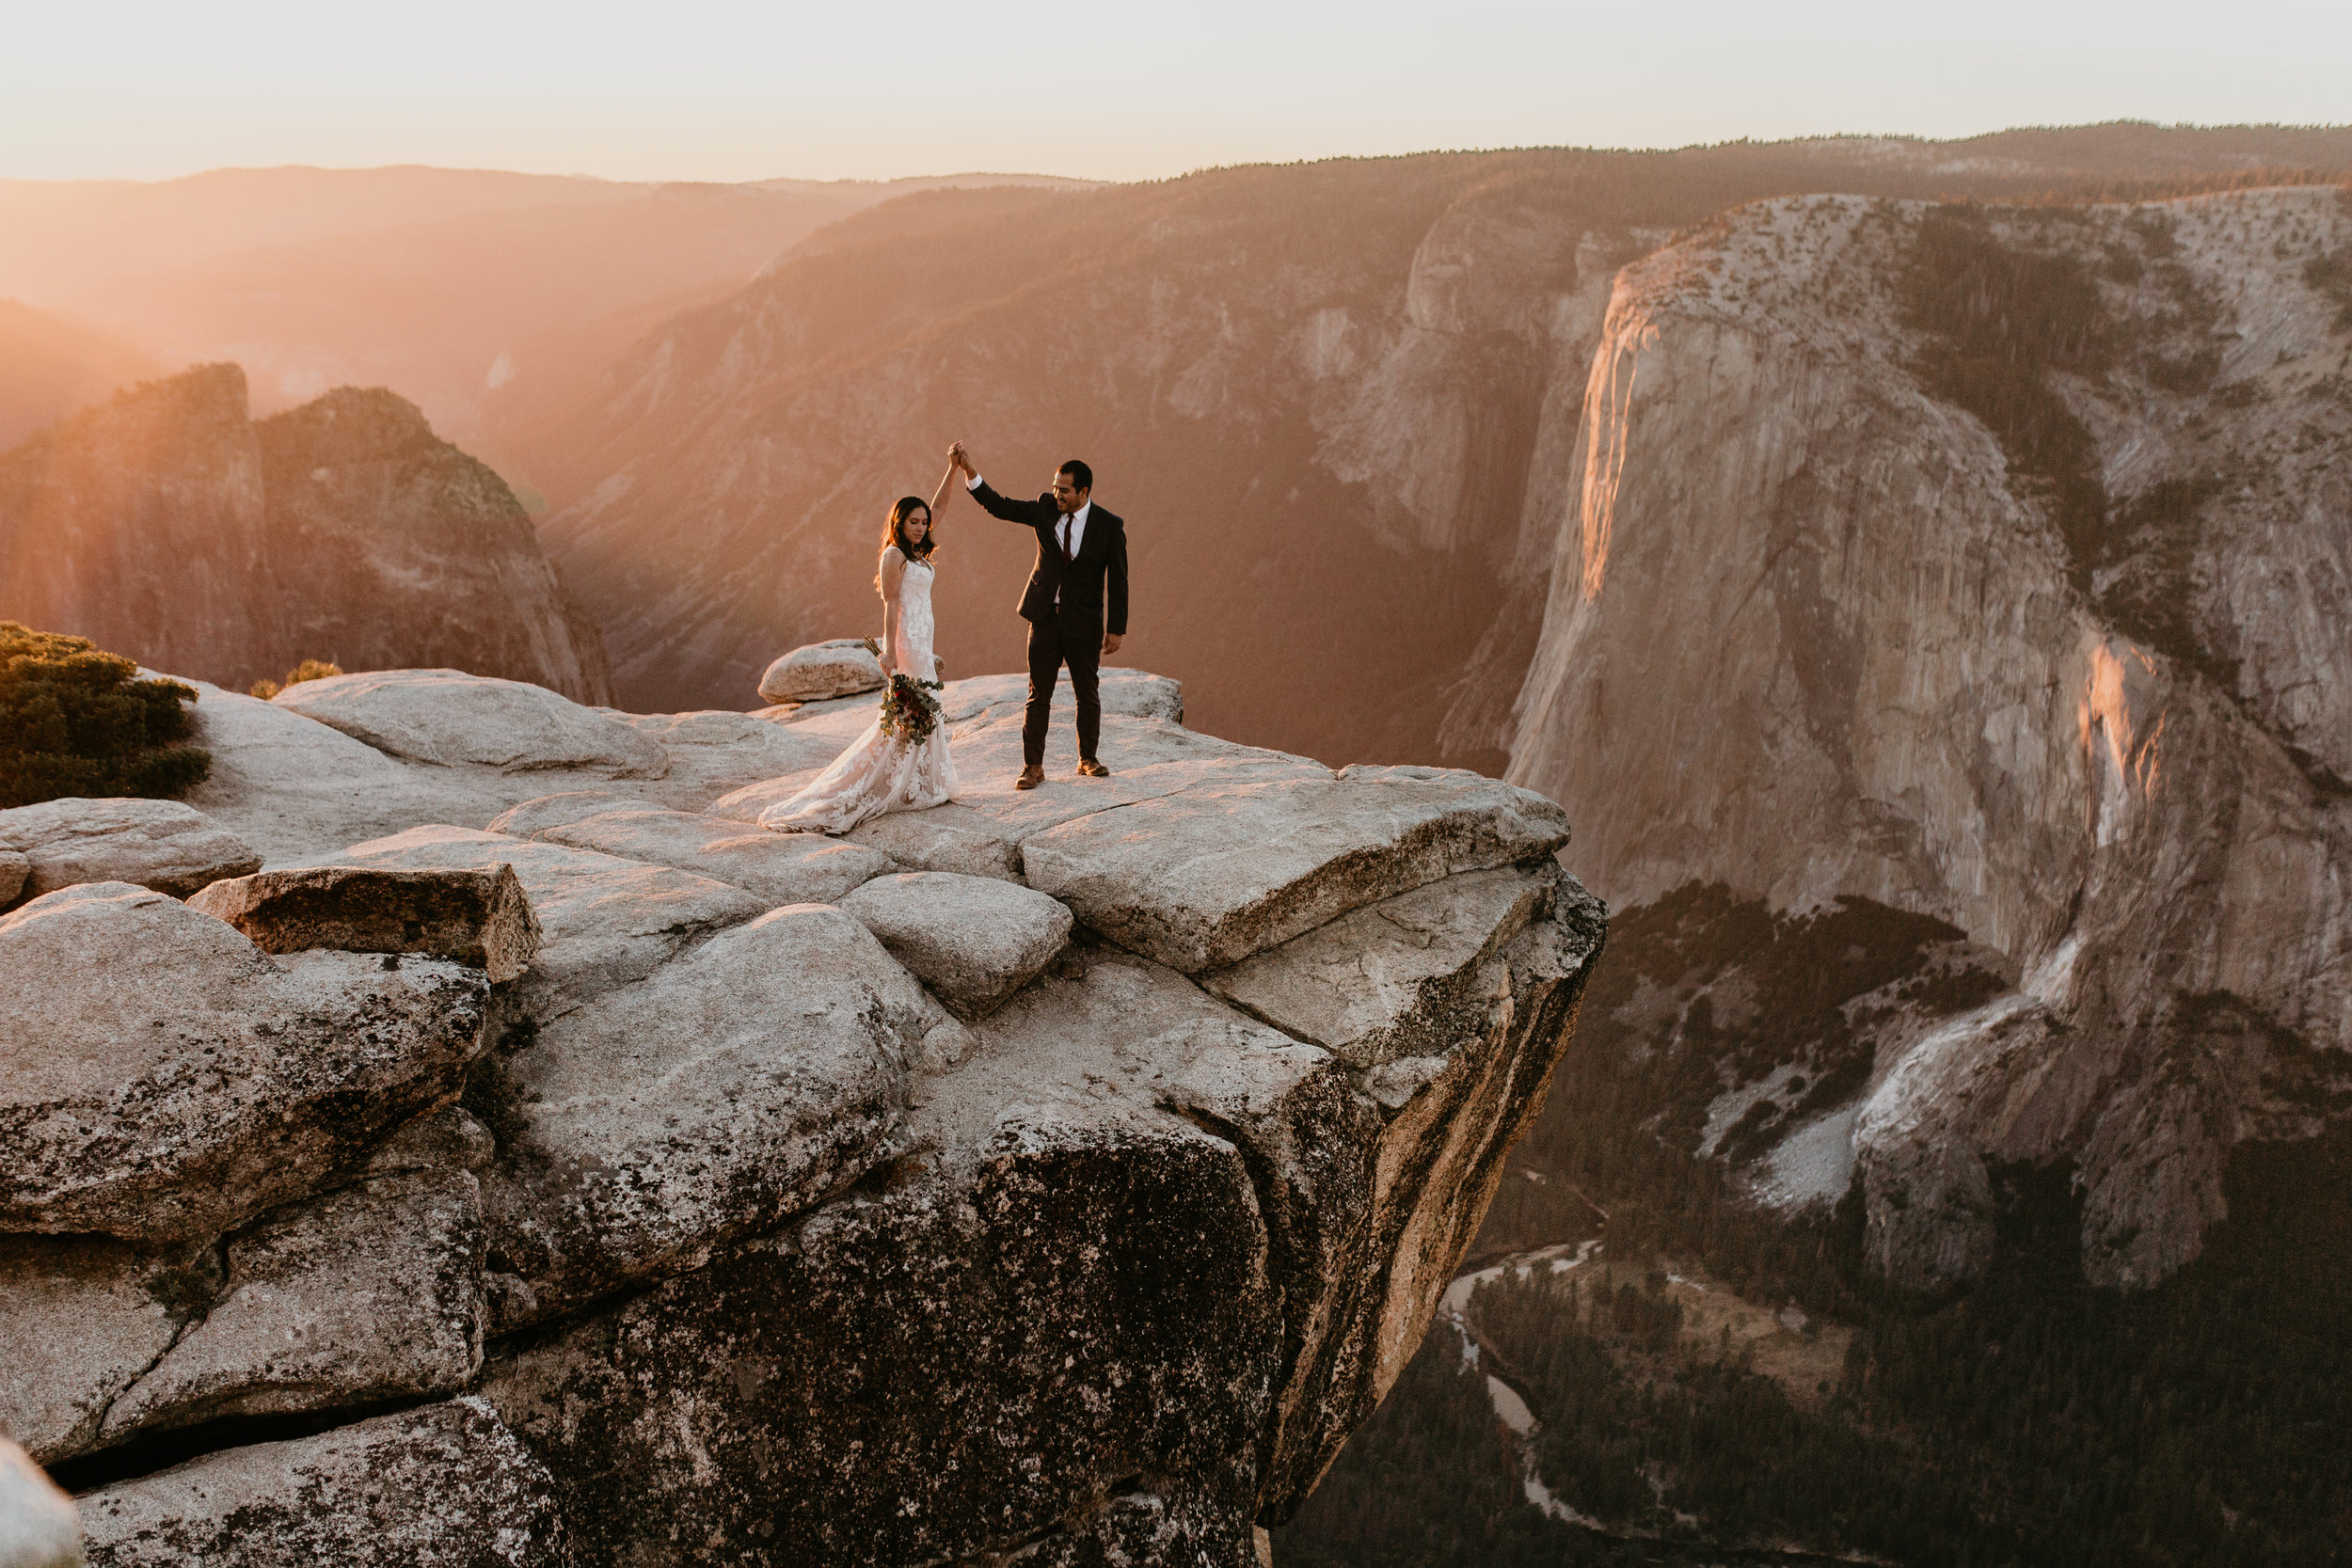 nicole-daacke-photography-intimate-elopement-wedding-yosemite-national-park-california-taft-point-sunset-photos-yosemite-valley-tunnel-view-first-look-sunrise-golden-granite-hiking-adventure-wedding-adventurous-elopement-photographer-115.jpg